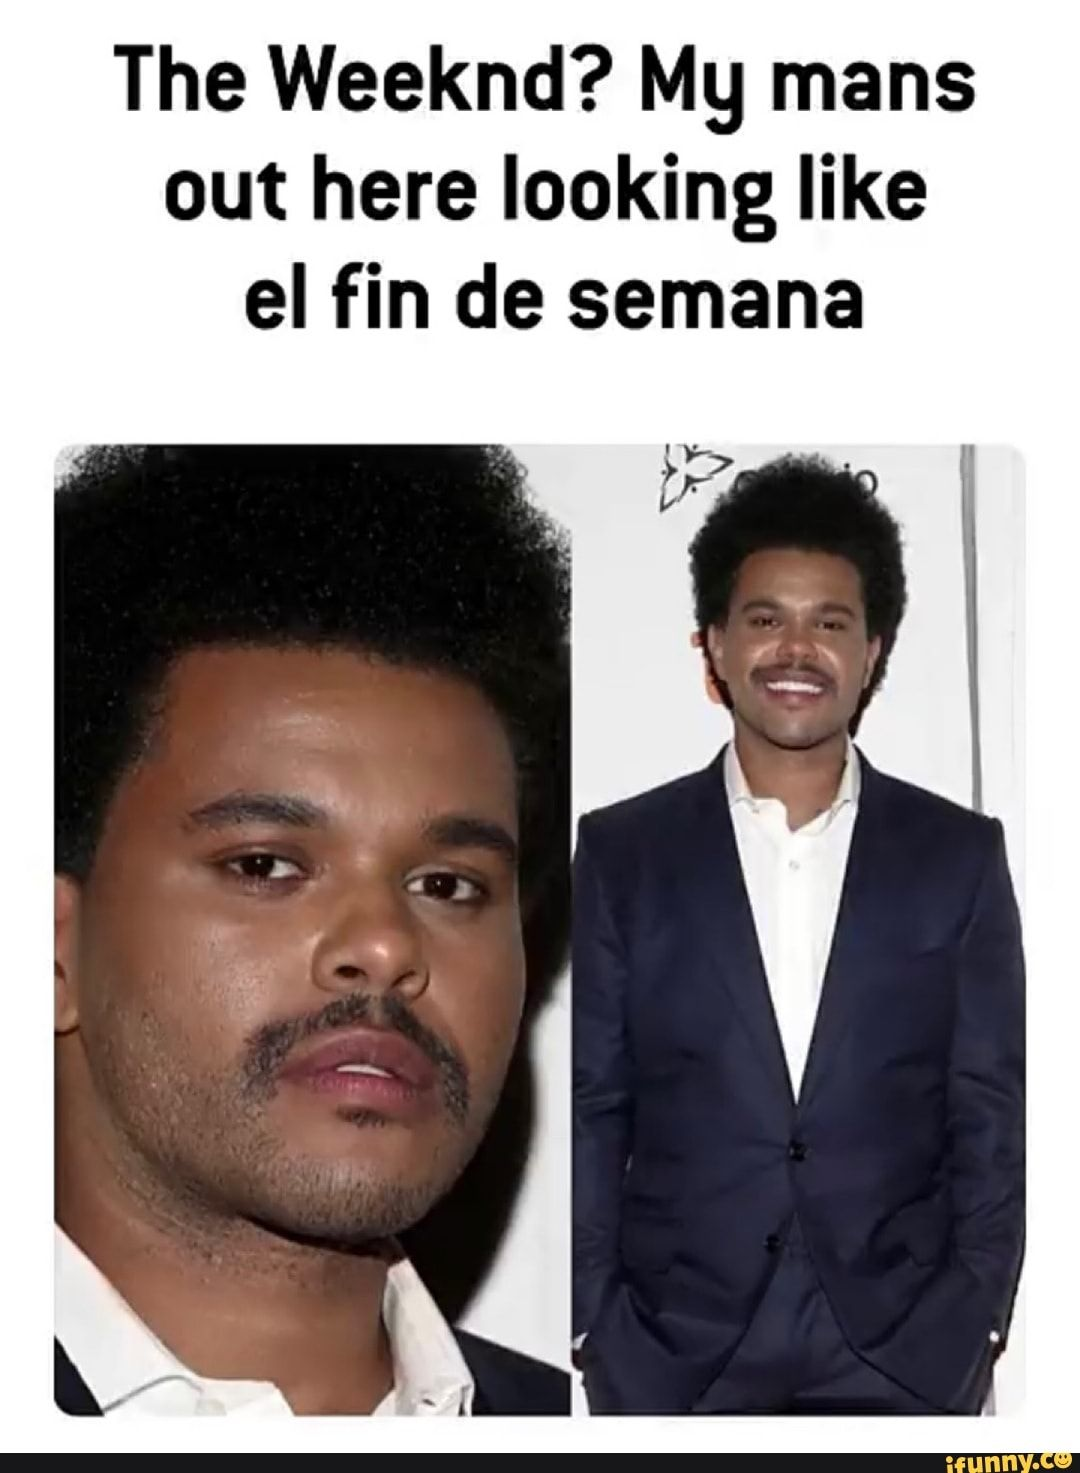 The Weeknd Mg Mans Out Here Looking Like El Fin De Semana Ifunny The Weeknd The Weeknd Memes Abel The Weeknd